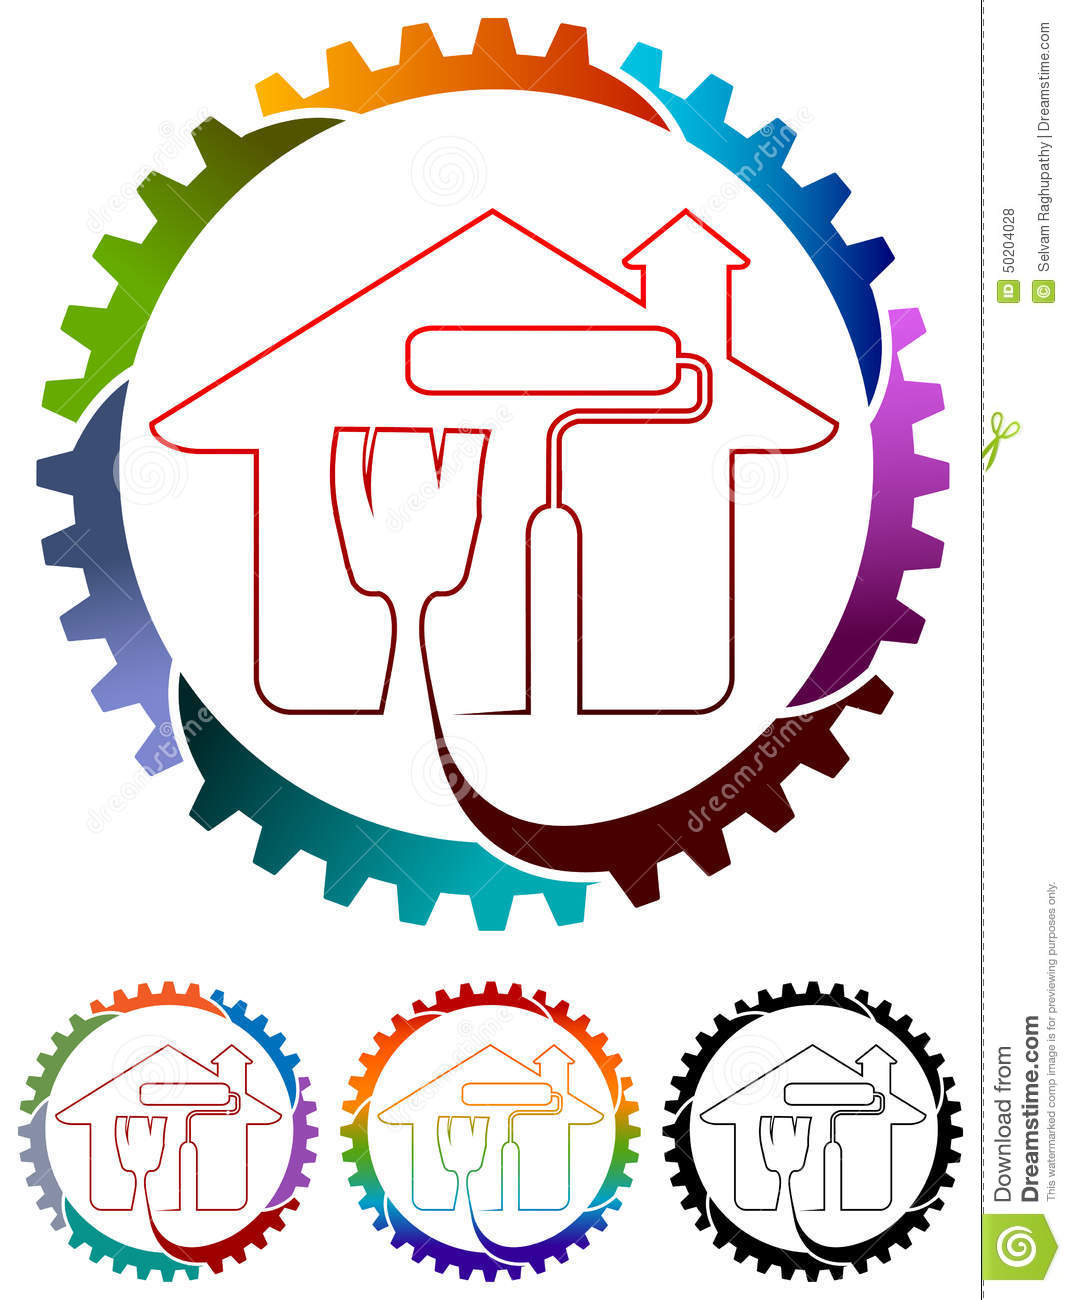 Home painting logo stock vector image 50204028 for Painting and decorating logo ideas